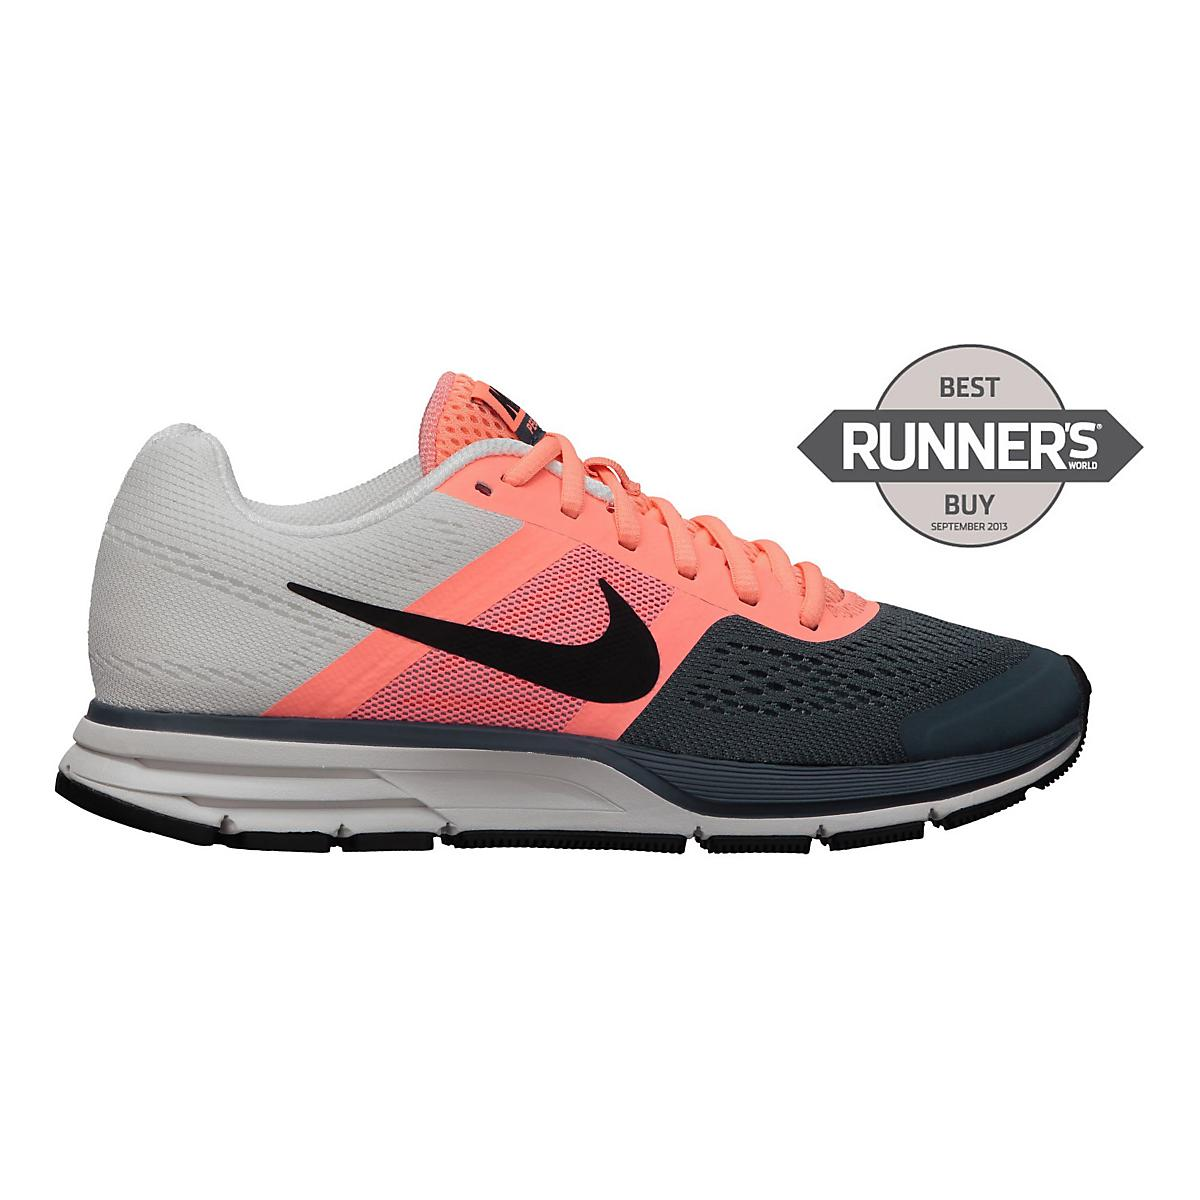 Womens Nike Air Pegasus+ 30 Running Shoe at Road Runner Sports a89f09c0d